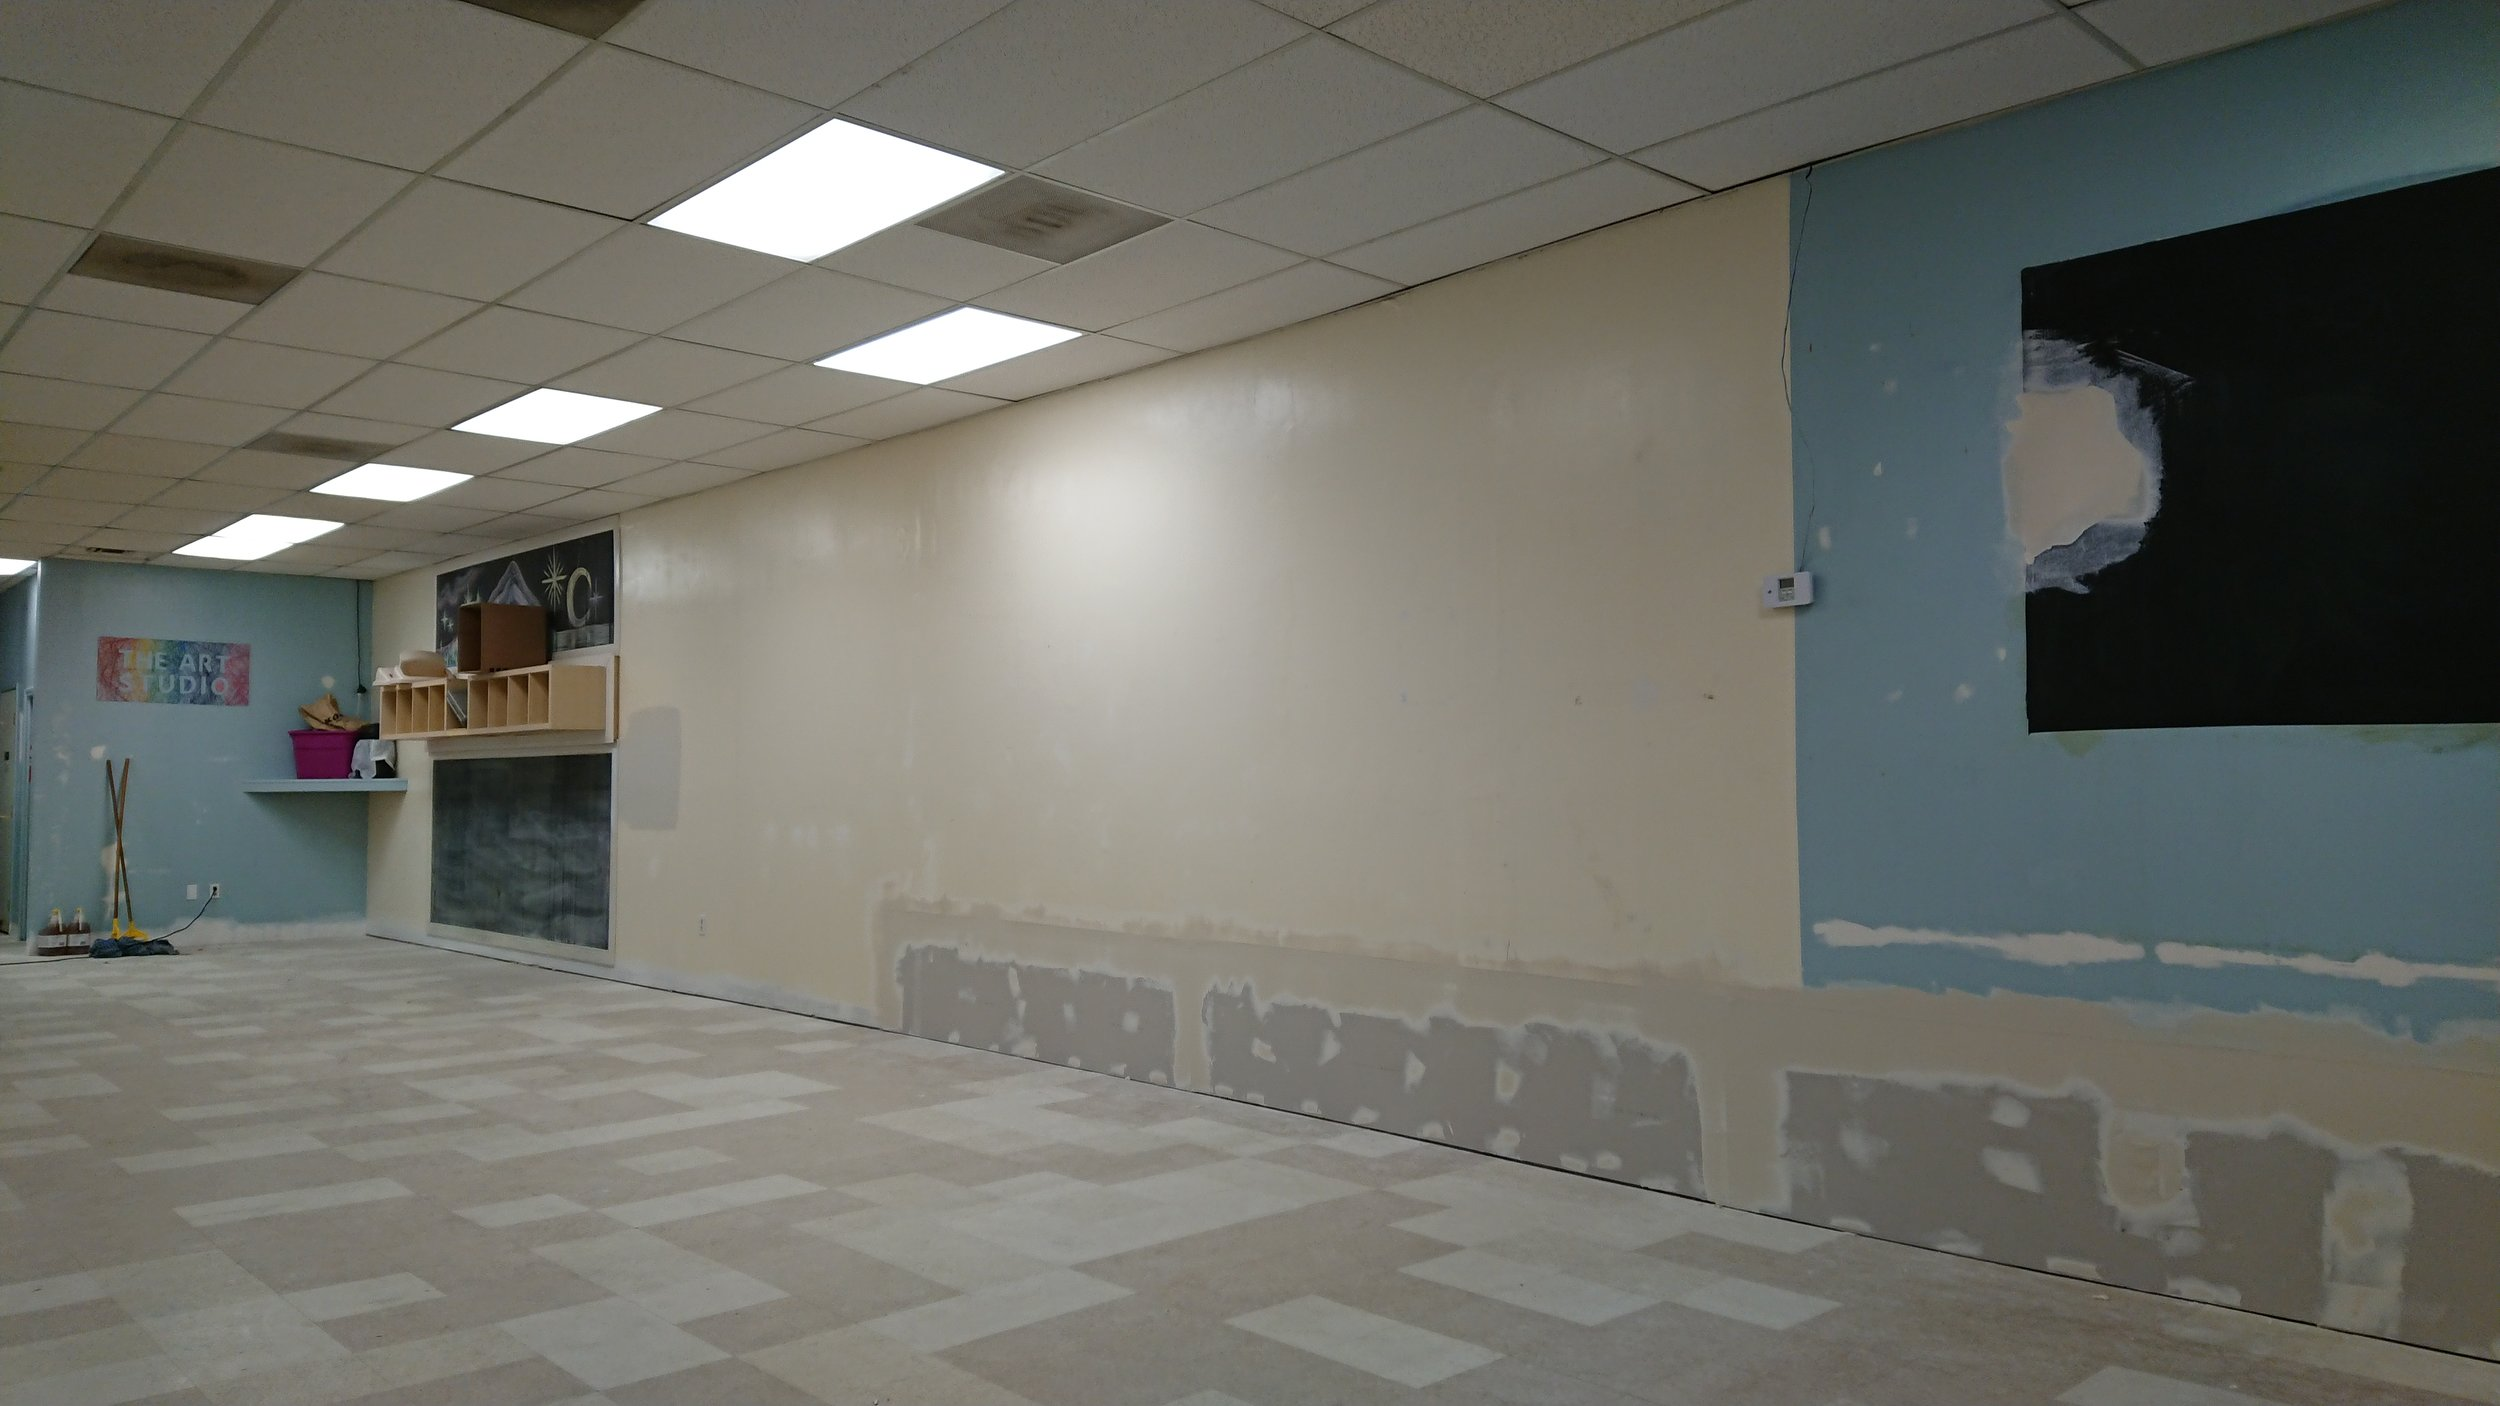 December 21st, drywall almost done, ceiling tiles replaced, and floor is ready to be refinished